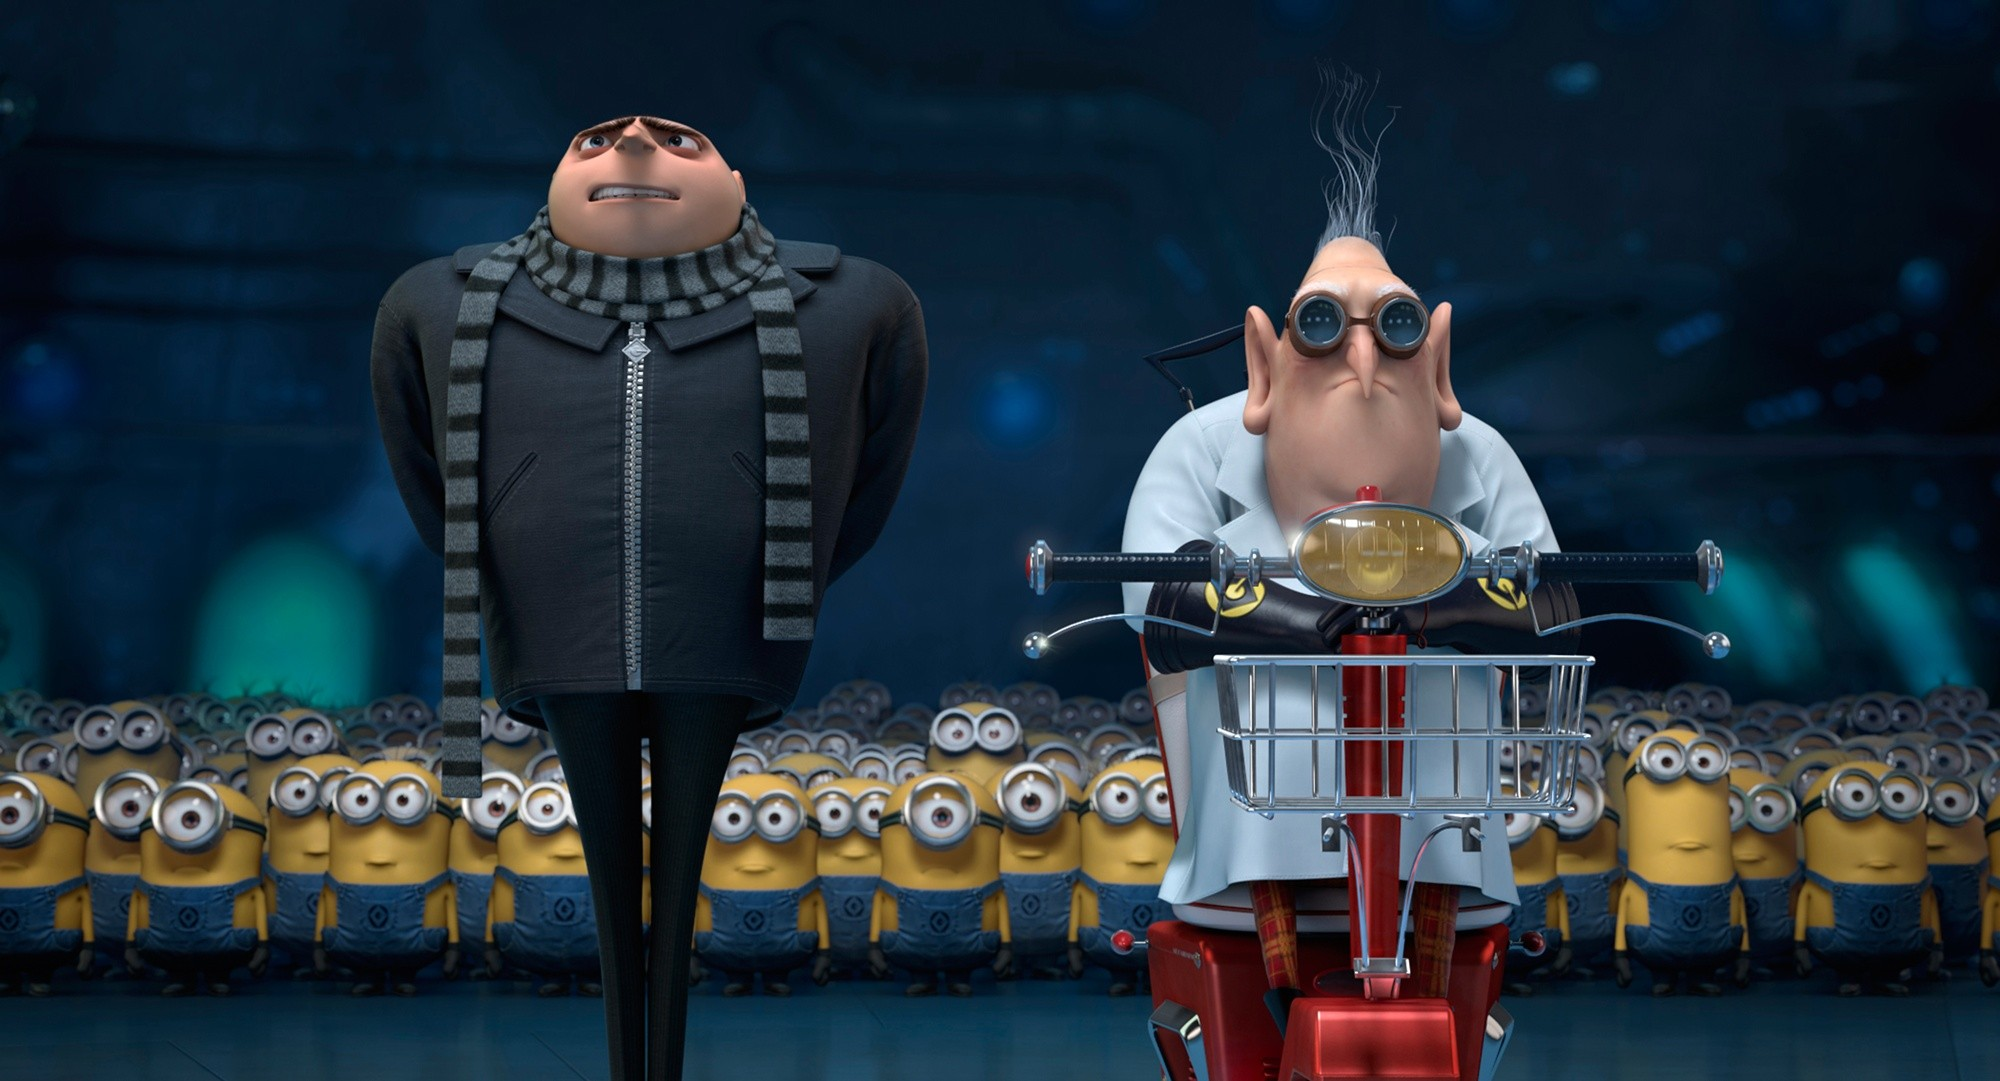 Despicable Me was a runaway hit back in 2010 when it was released. Since then, it has spawned two sequels (the third of which hits US theaters this Friday) and […]